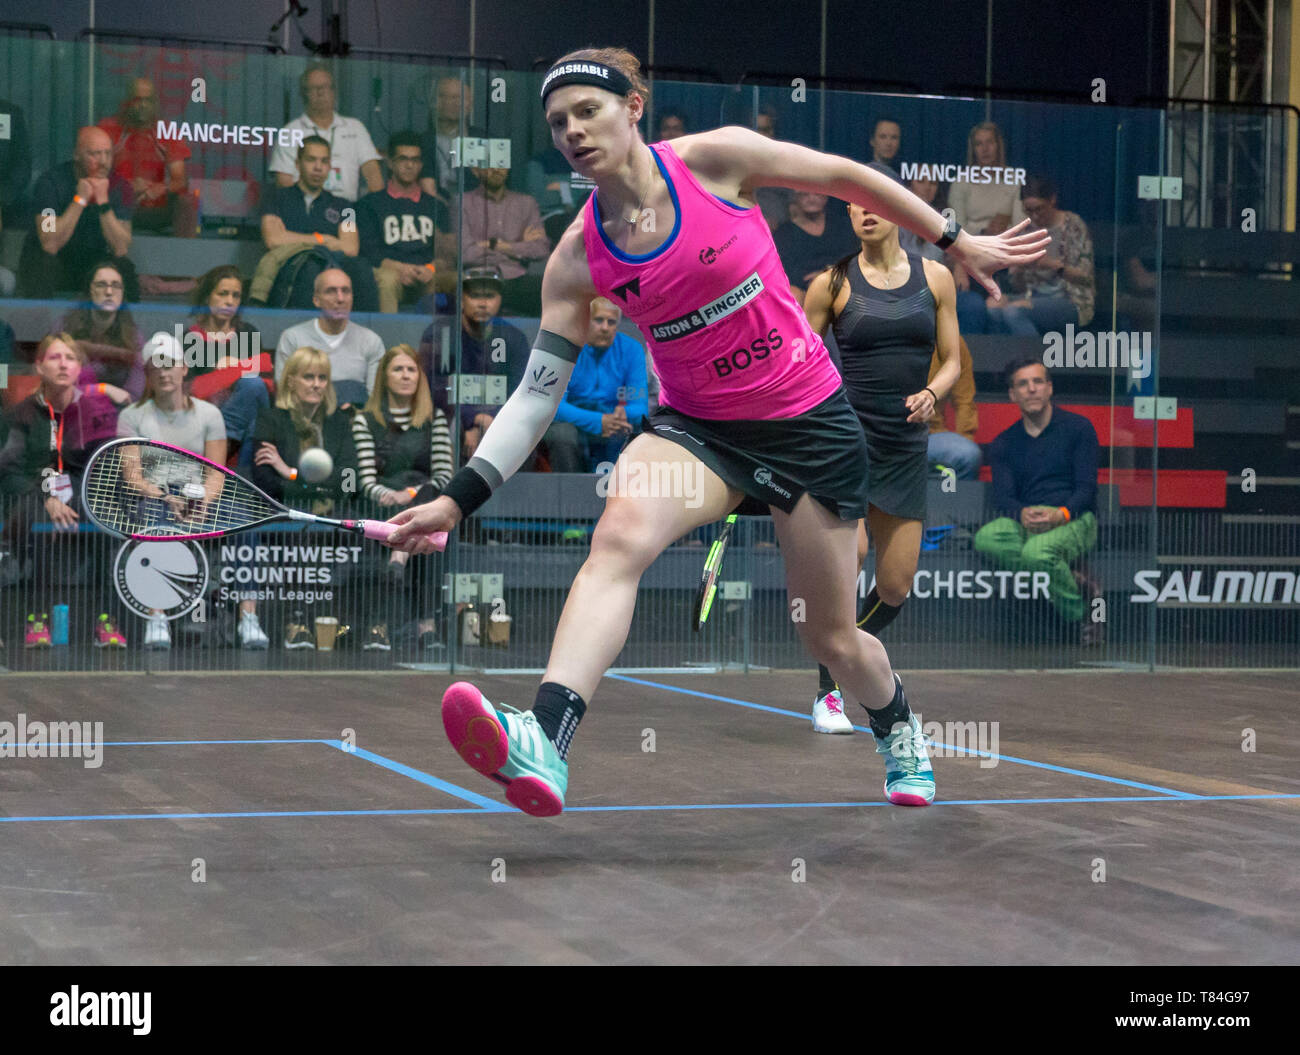 National Squash Centre, Manchester, UK. 10th May, 2019. Manchester Open Squash championships, day 2; Sarah-Jane Perry (ENG) in her second round match against Nicol David (MAS) Credit: Action Plus Sports/Alamy Live News - Stock Image